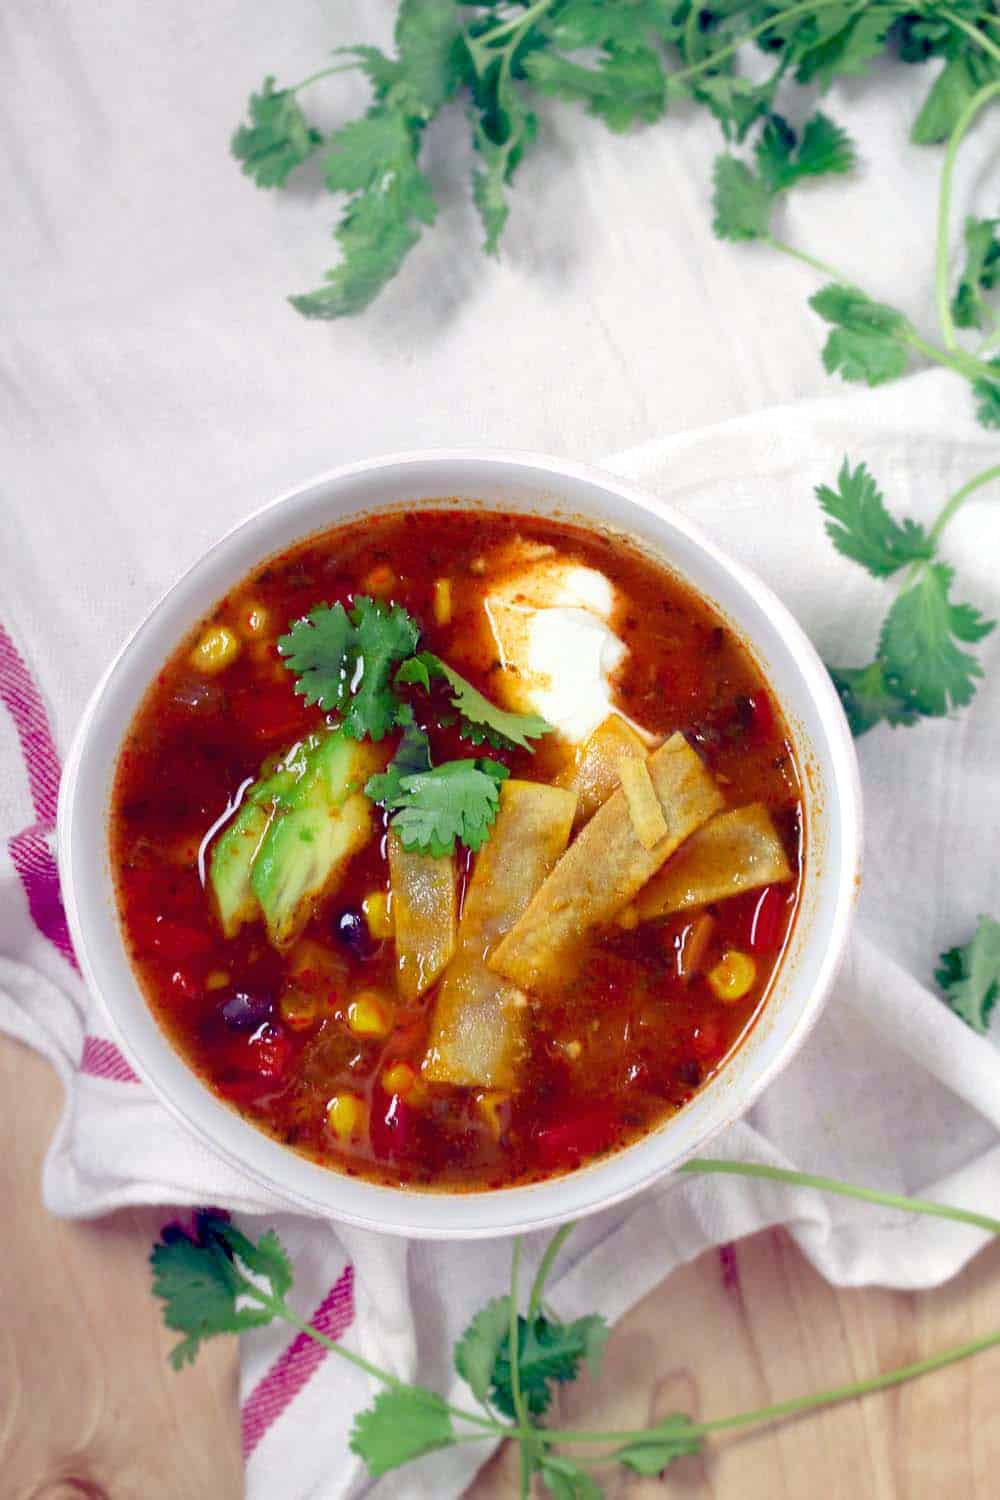 A healthy and delicious vegetarian/vegan tortilla soup loaded with vegetables and topped with guilt-free fixings.